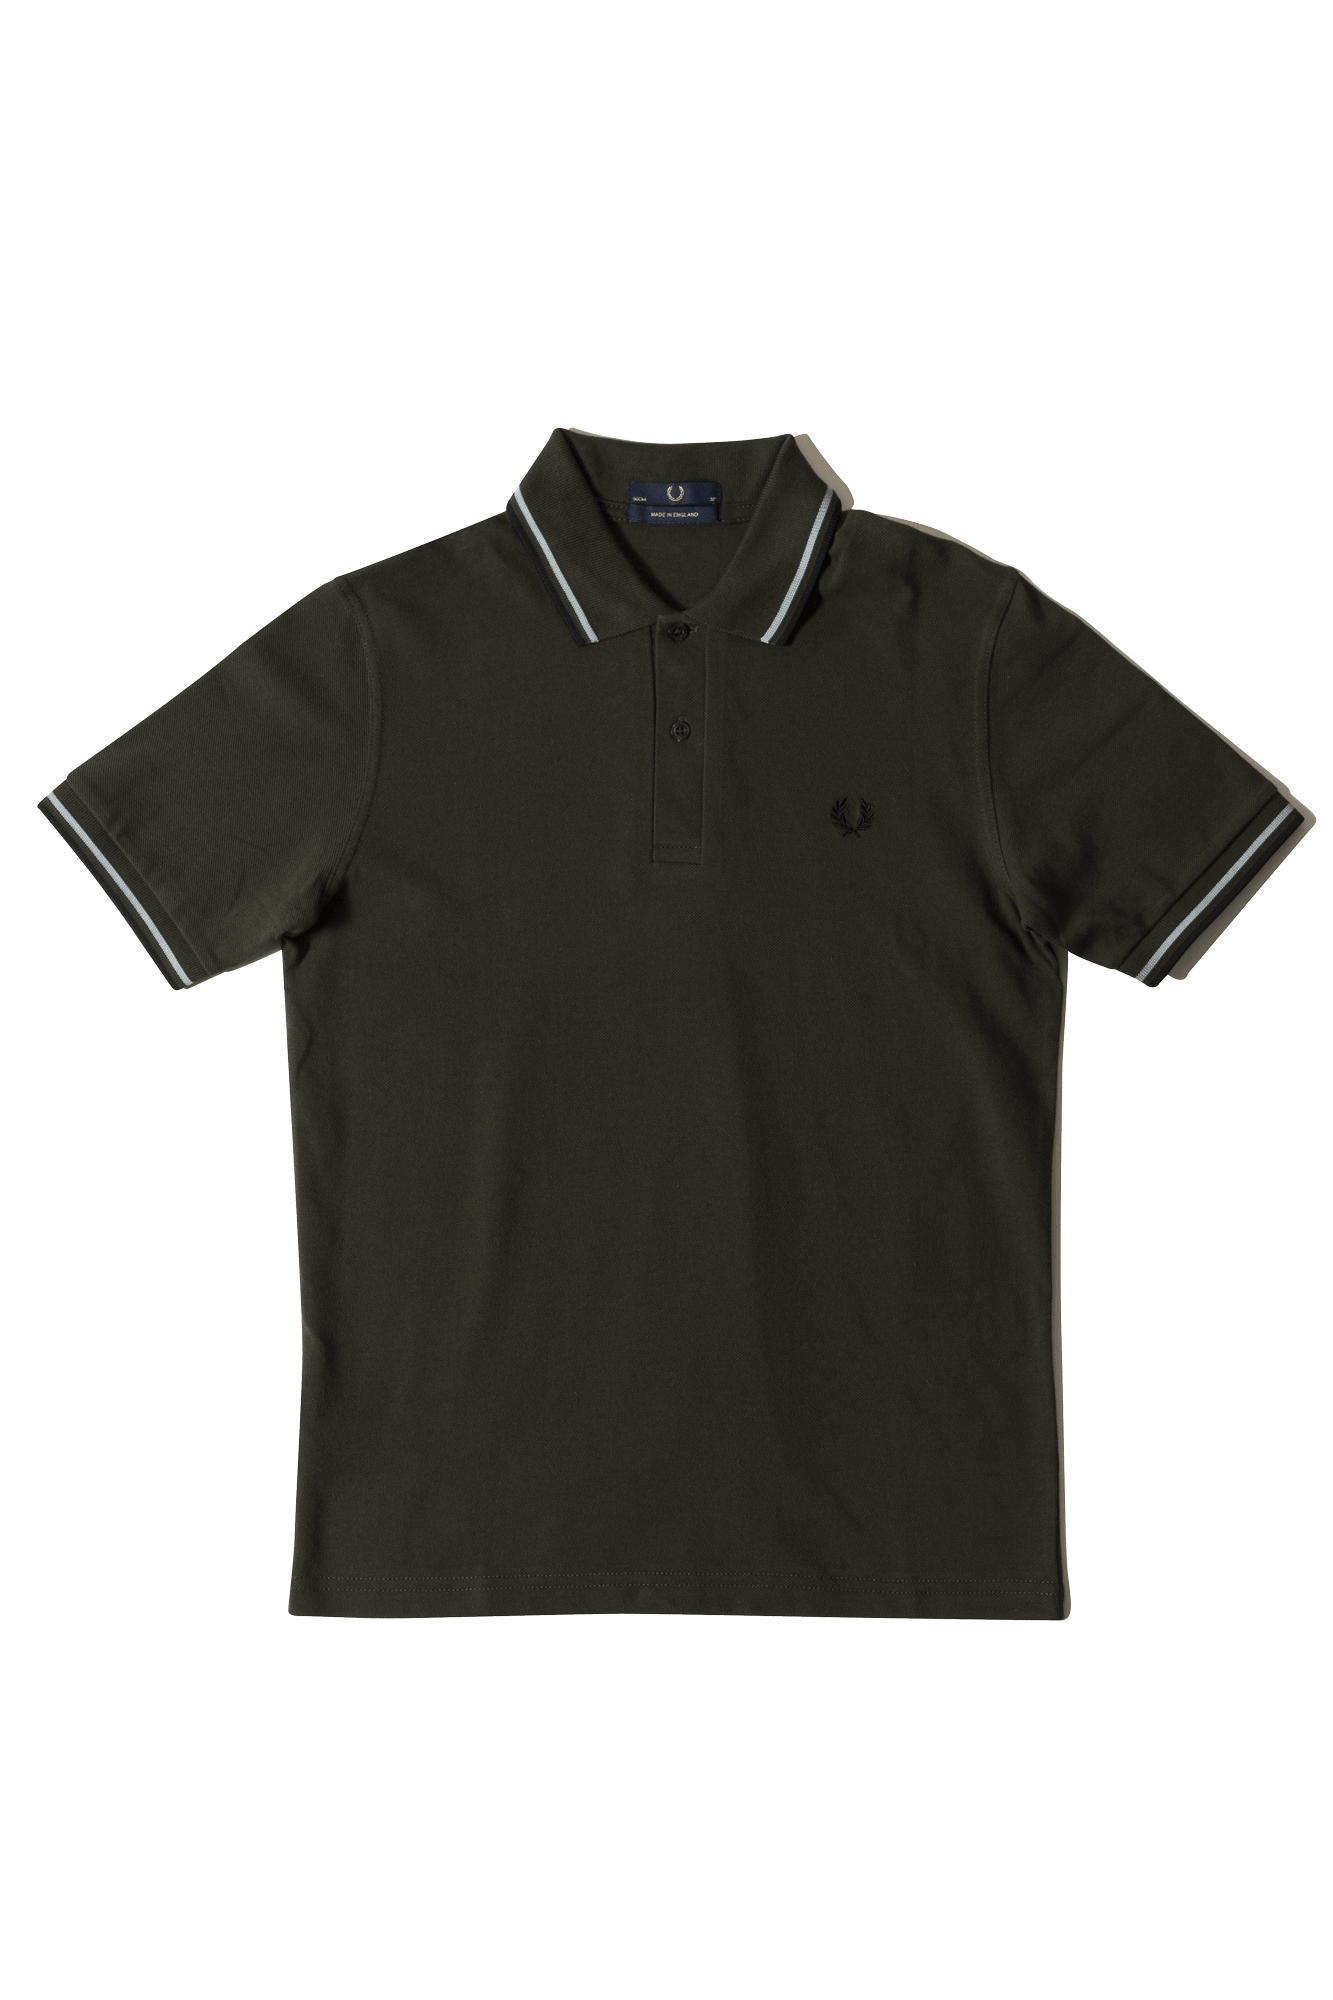 Fred Perry Polo Twin Tipped Fred Perry Shirt Verde M12408#000#C0013#44 - One Block Down